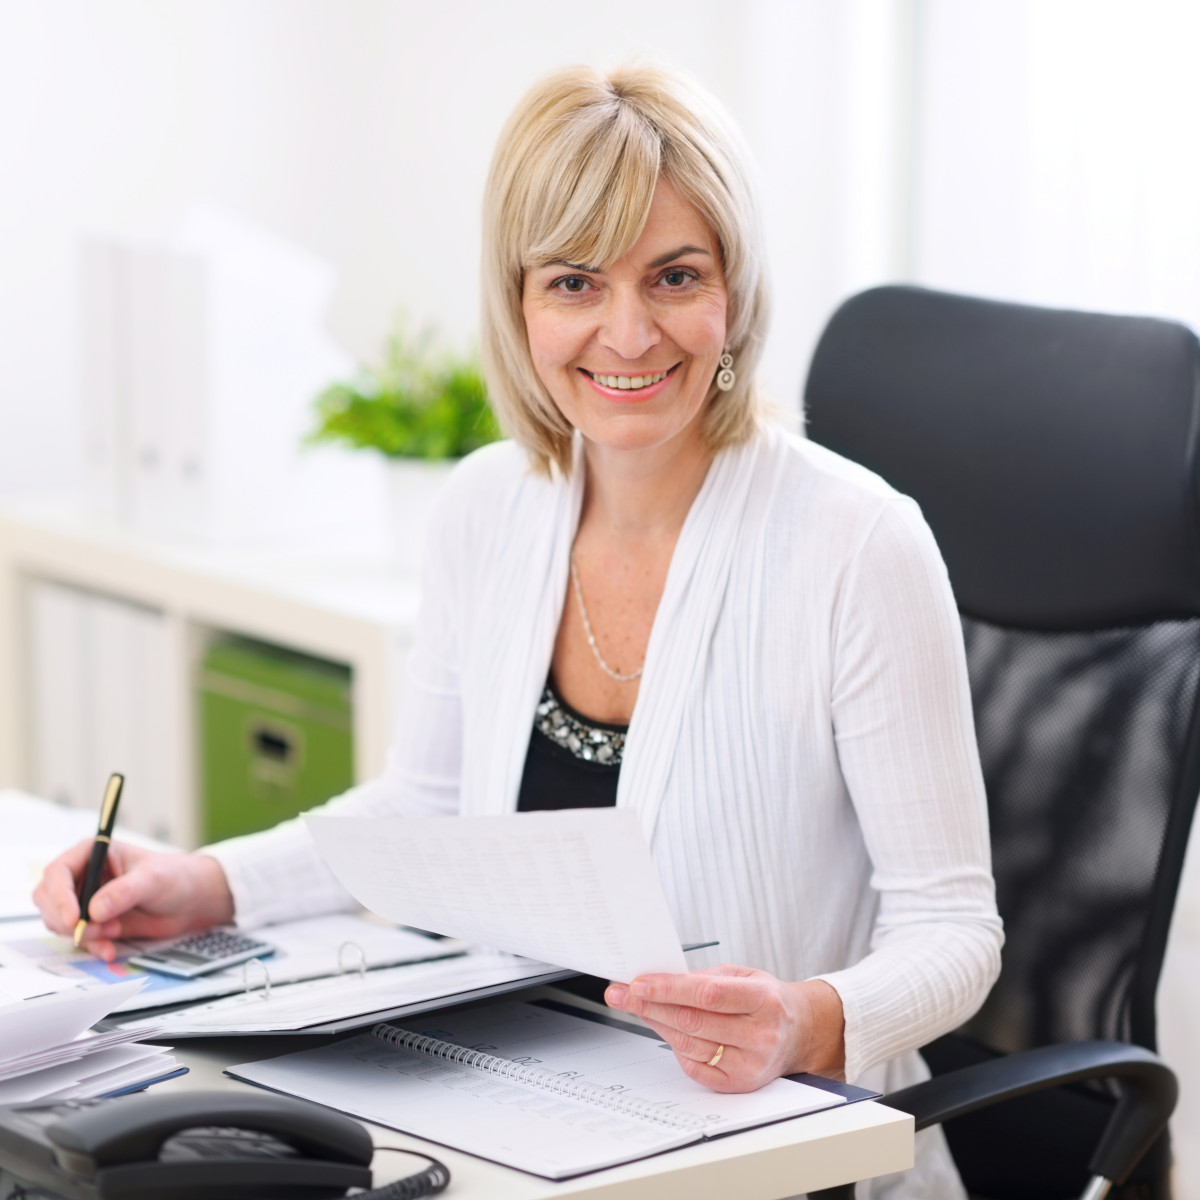 Skills At Work - Small Business Services